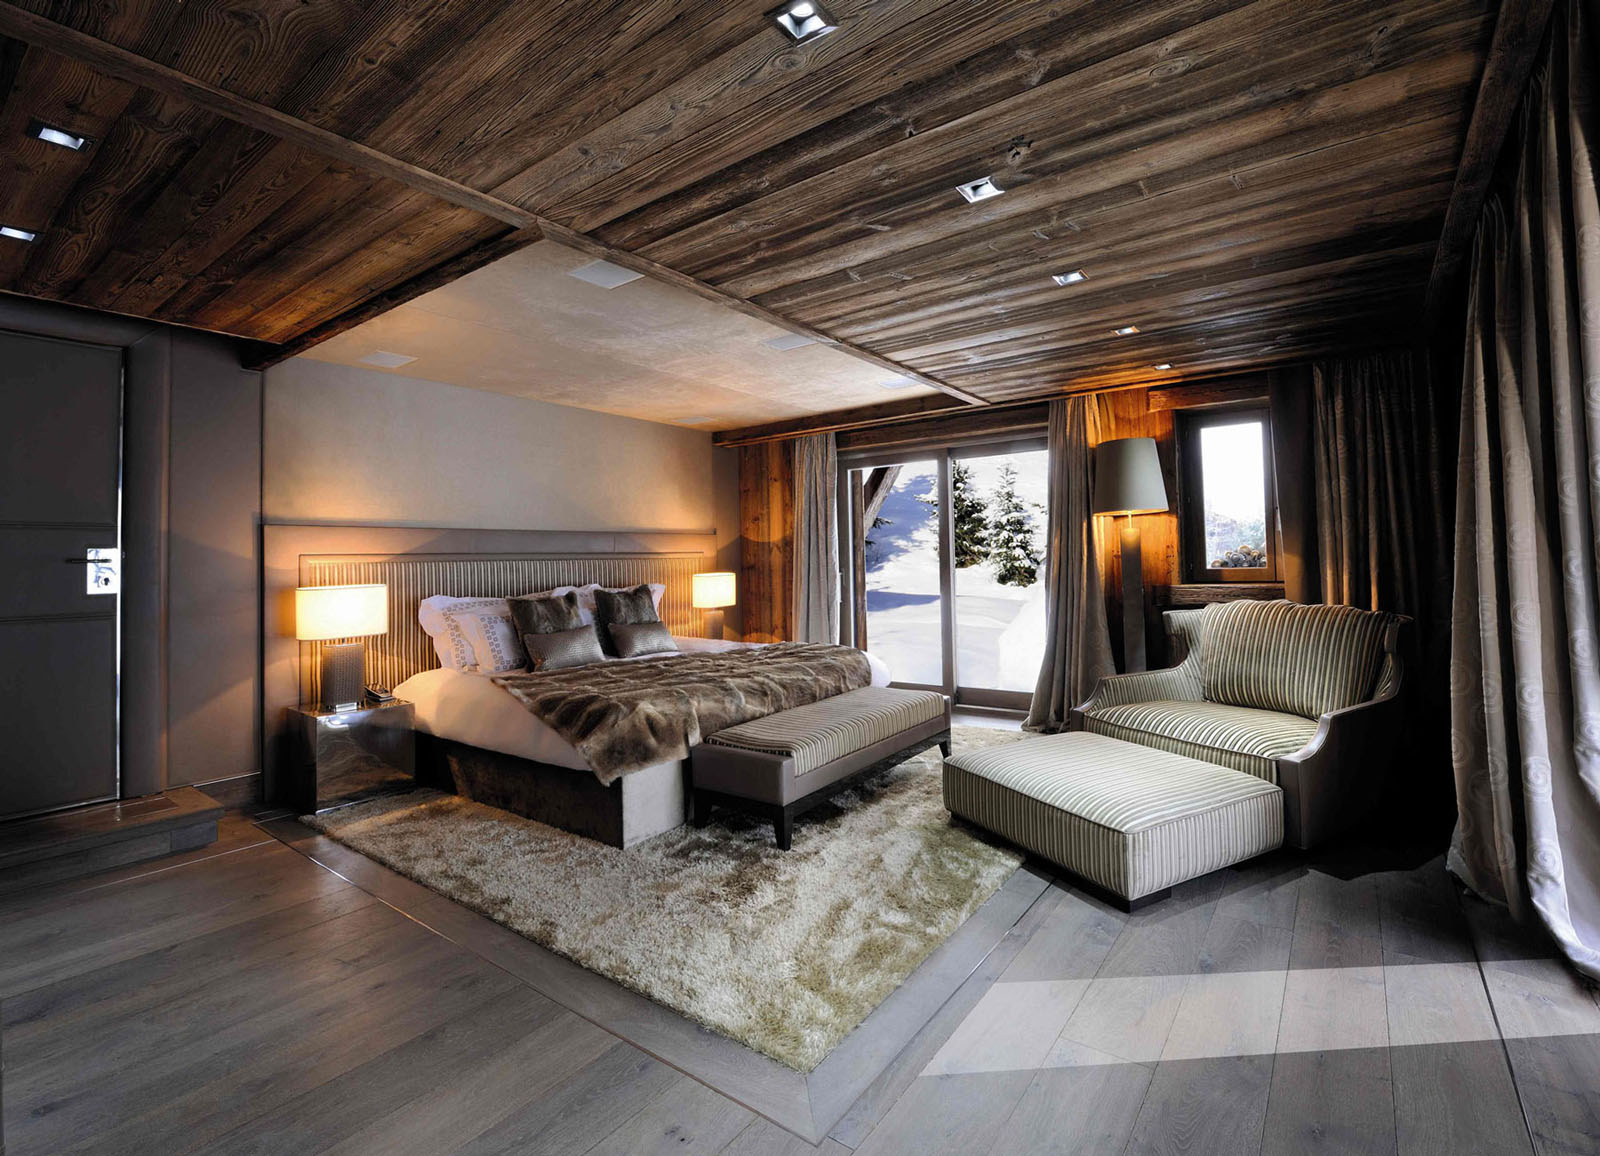 Chic Modern Rustic Chalet In The Rh 244 Ne Alpes Idesignarch